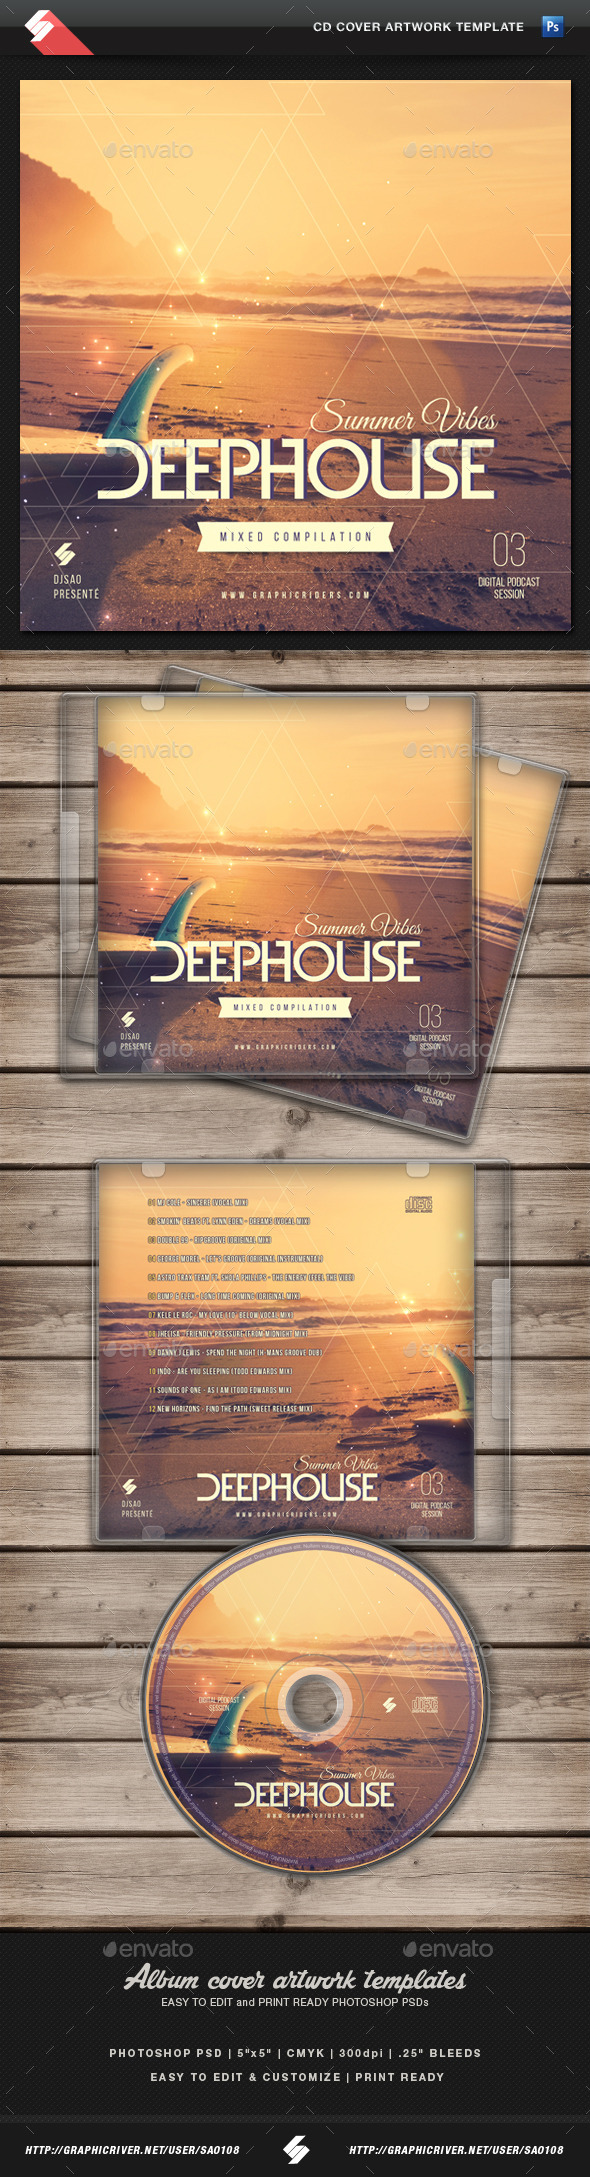 GraphicRiver Summer Vibes 3 House Music CD Cover Template 11208579